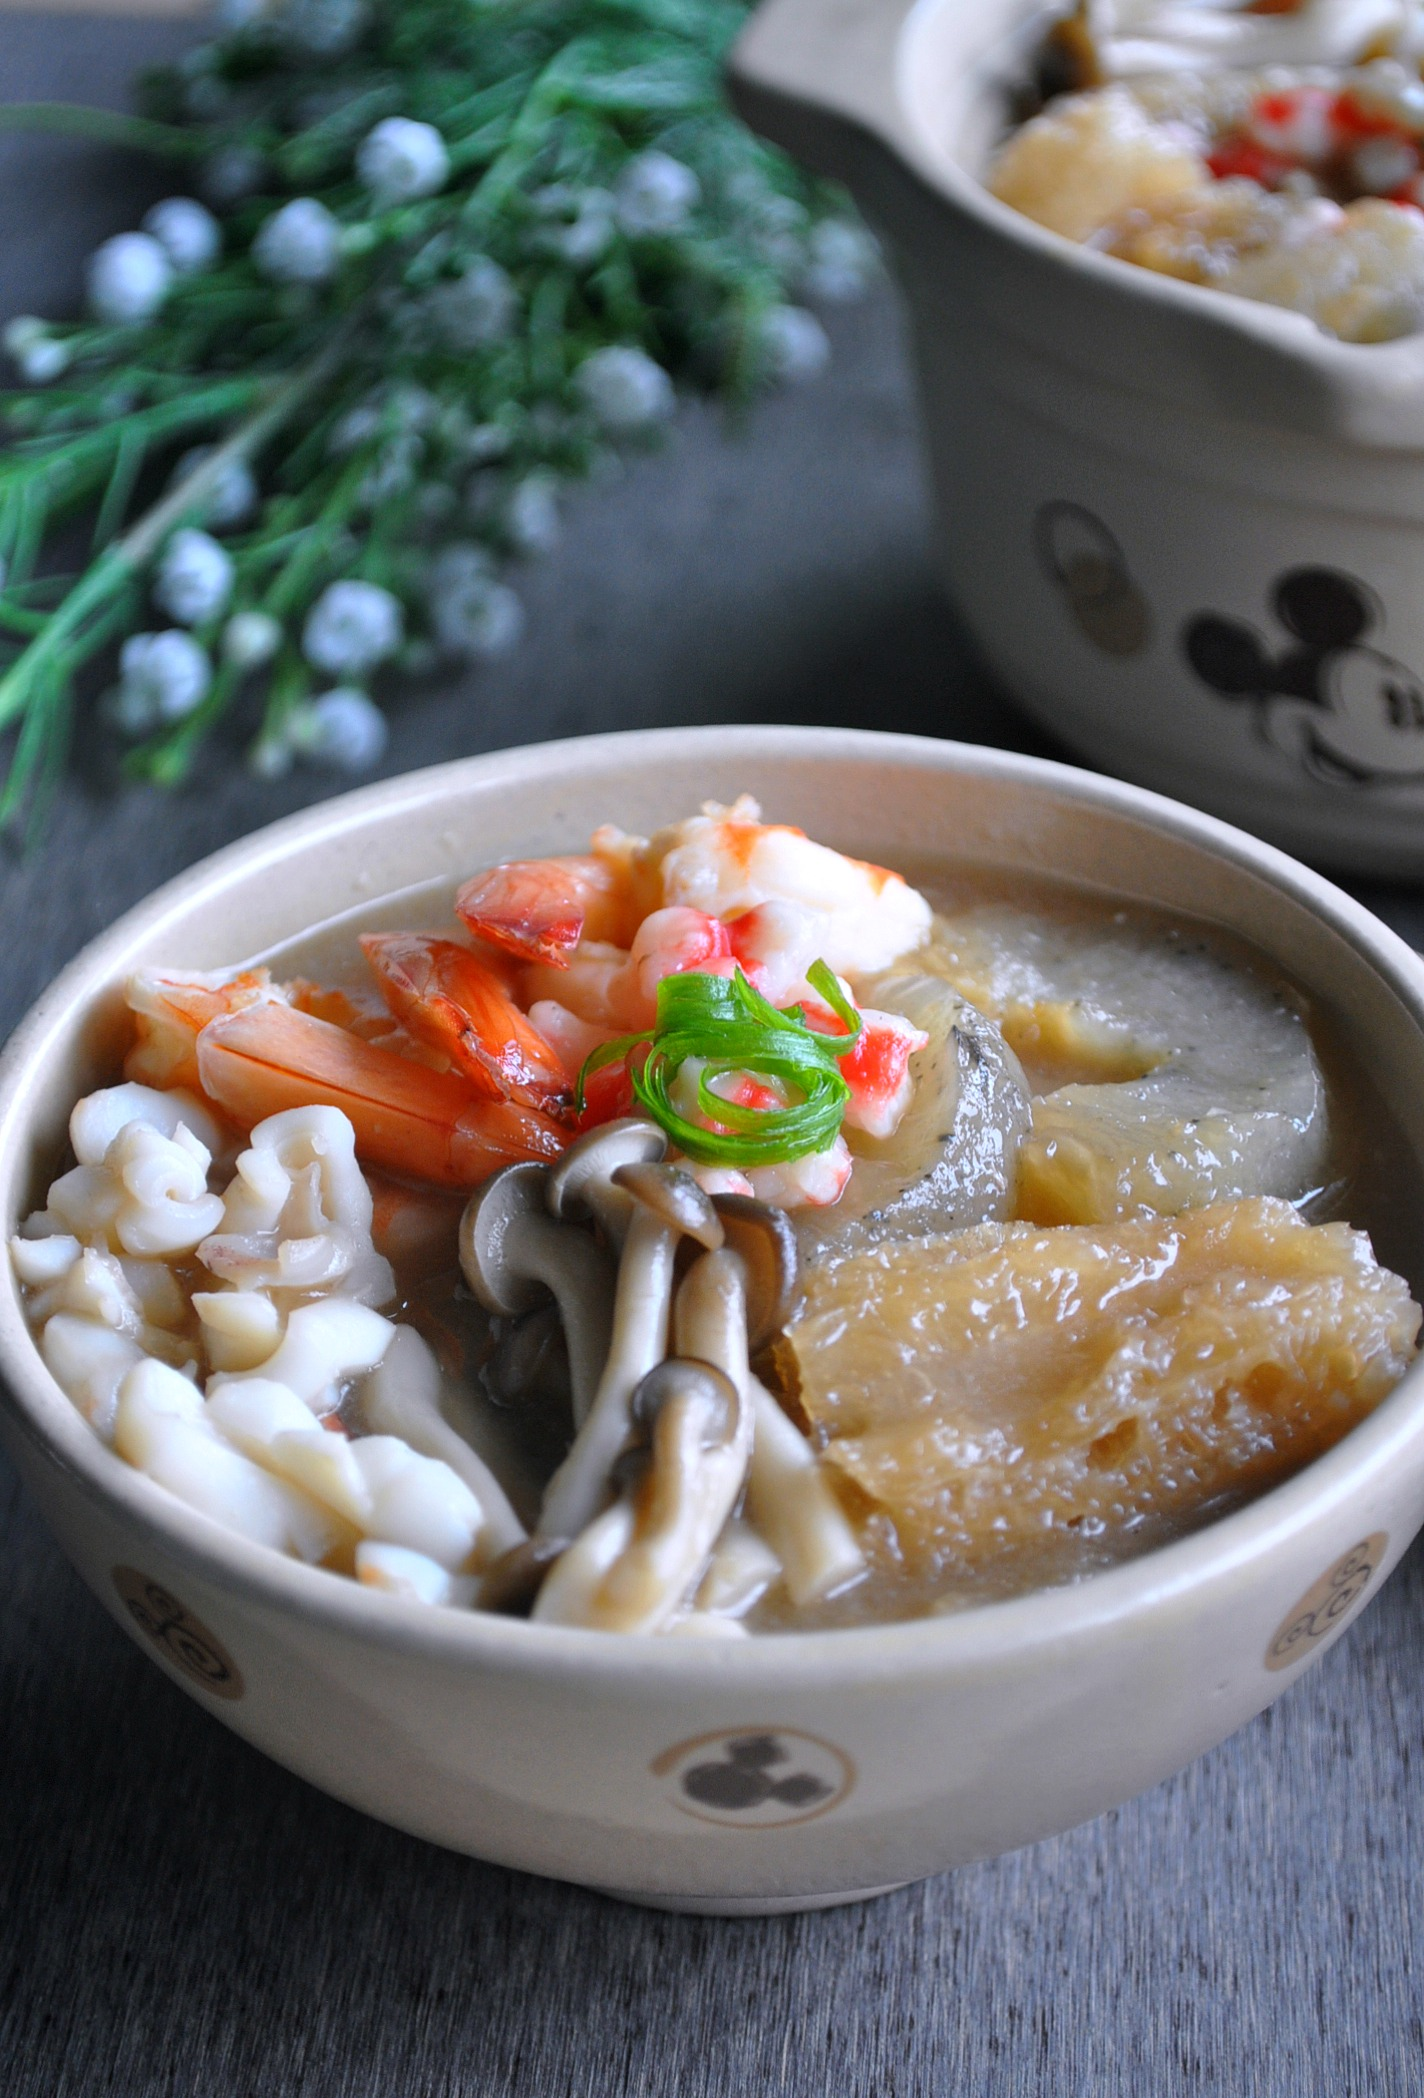 Fish maw sea cucumber seafood broth eat what for Fish broth soup